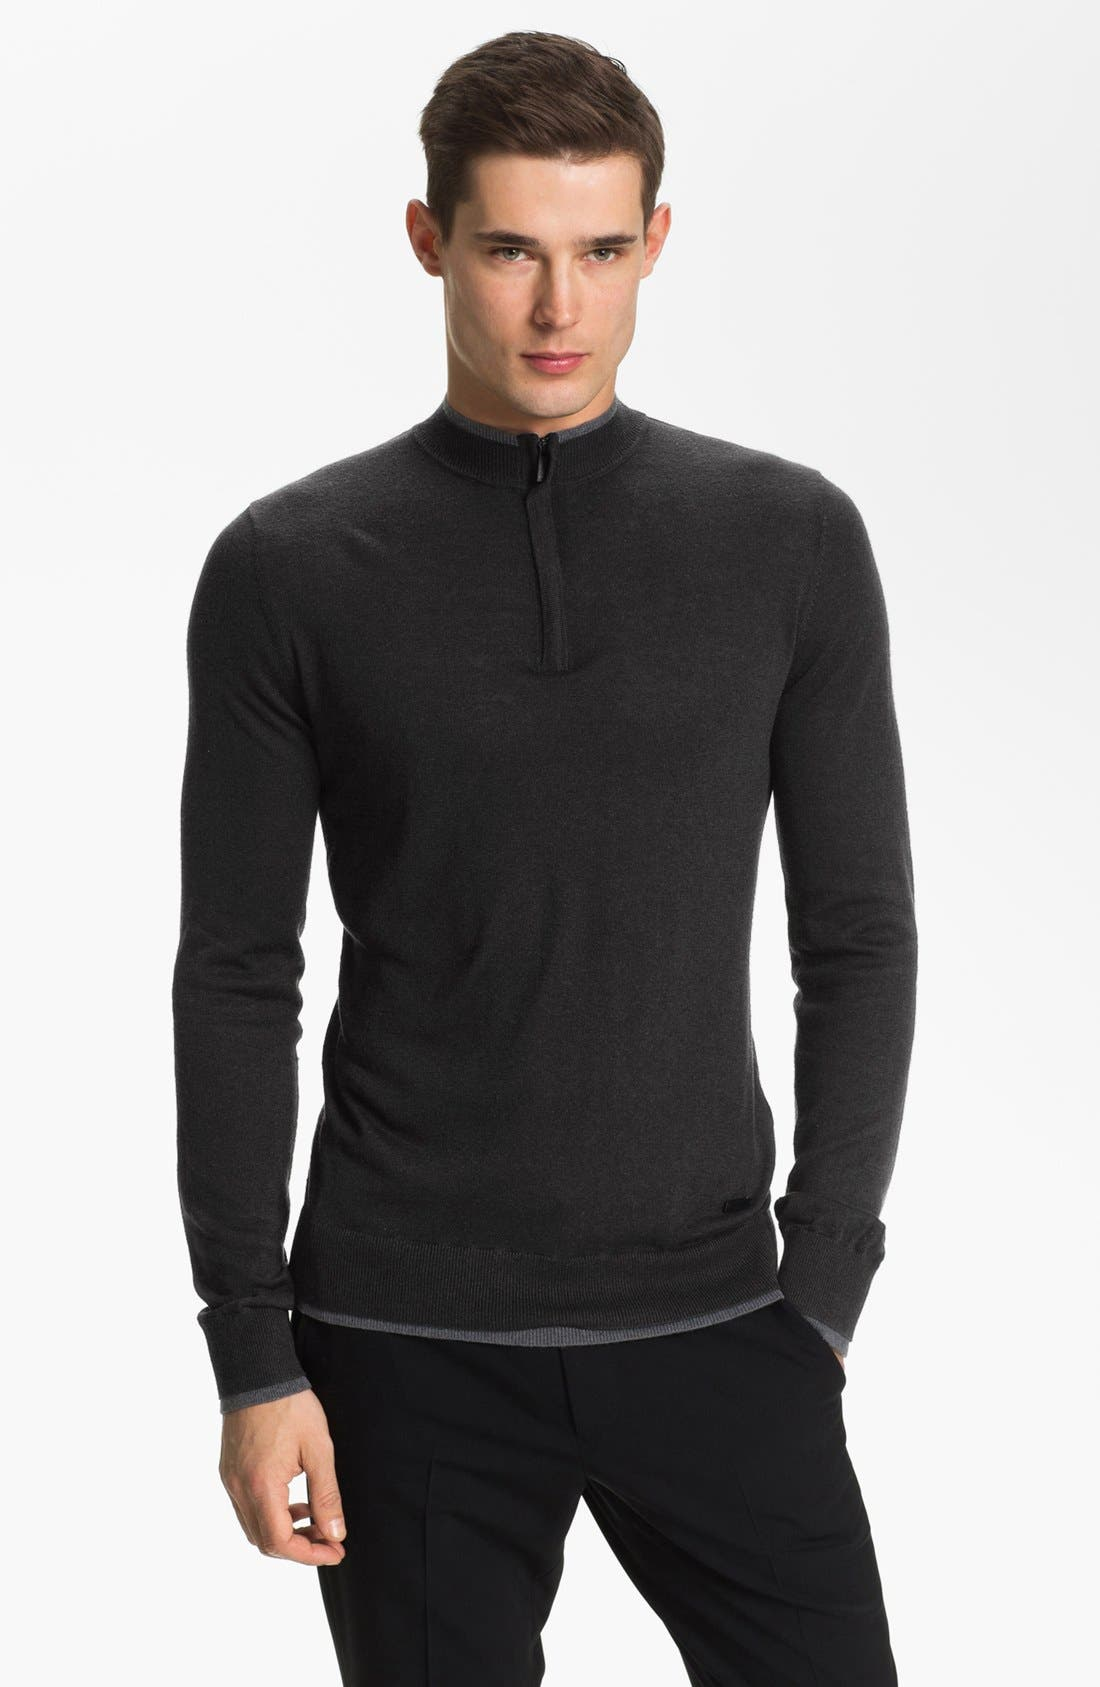 Alternate Image 1 Selected - Armani Collezioni Quarter Zip Sweater